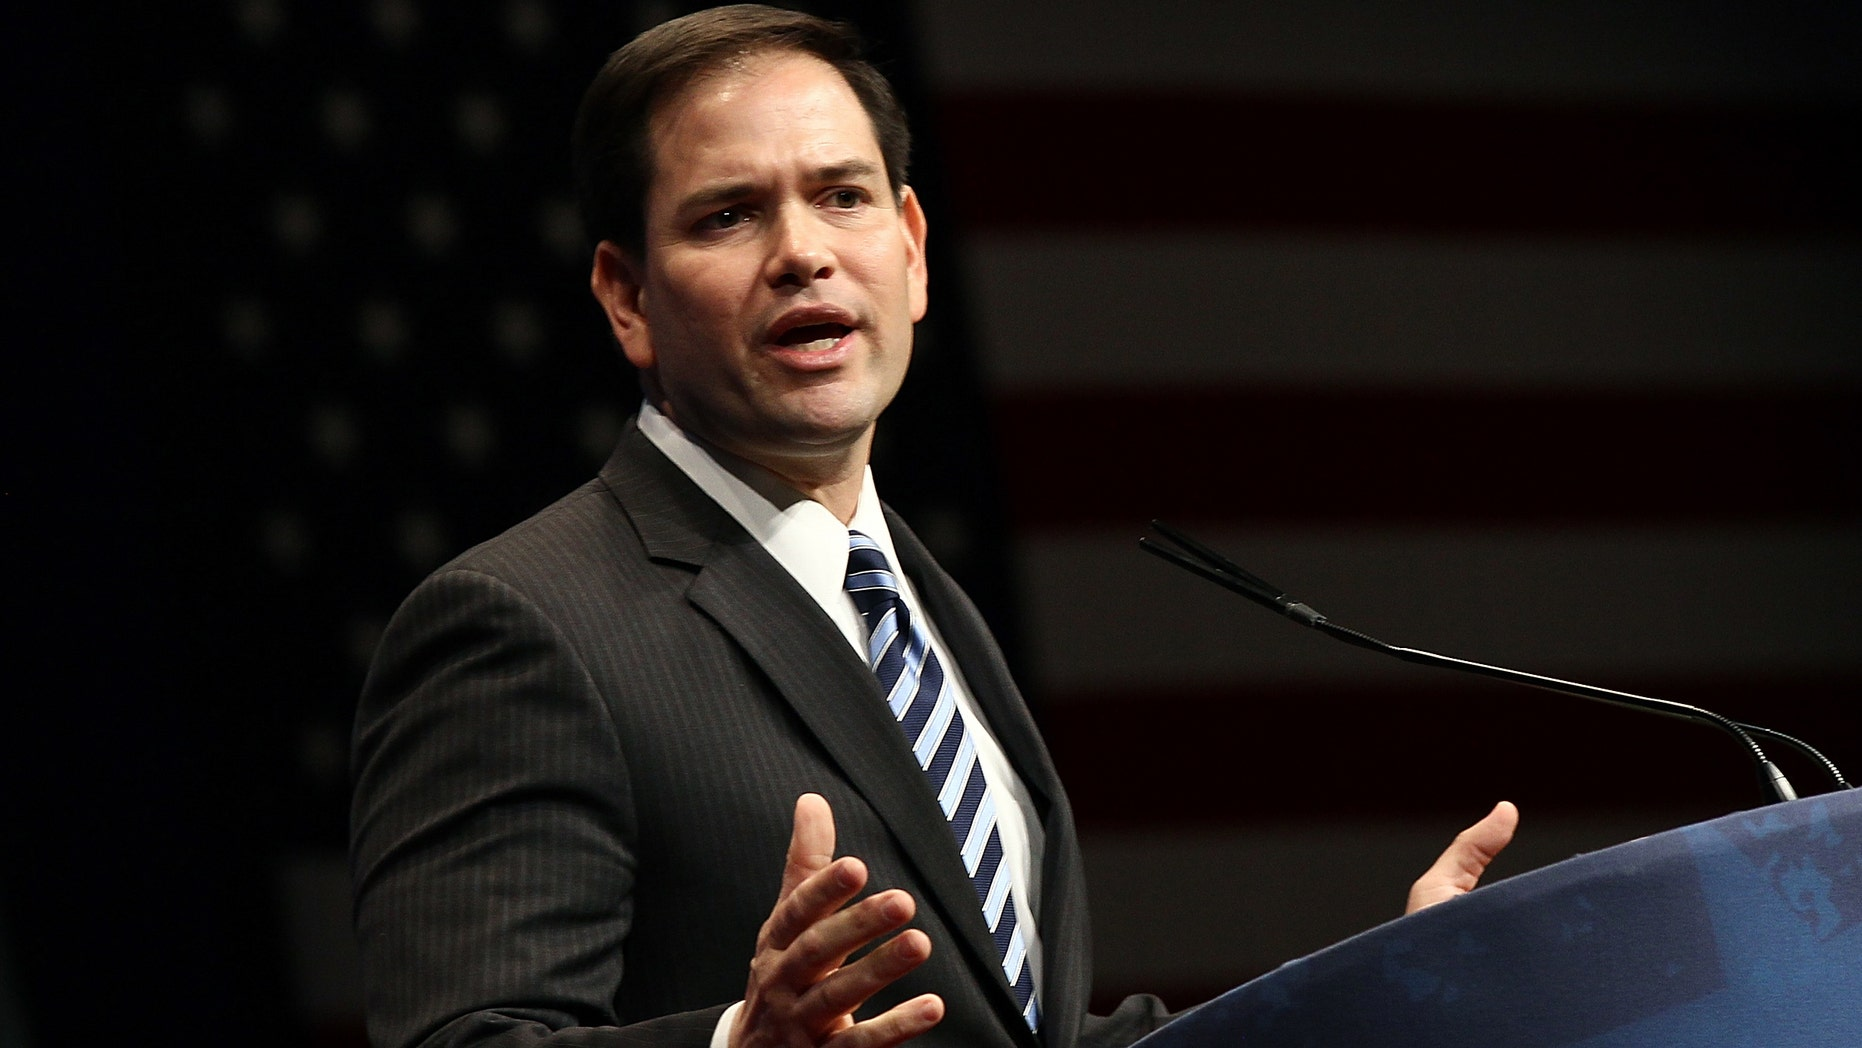 """WASHINGTON, DC - FEBRUARY 09:  Sen. Marco Rubio (R-FL) delivers a speech titled, """"Is America Still an Exceptional Nation?"""" during the annual Conservative Political Action Conference (CPAC) February 9, 2012 in Washington, DC. Thousands of conservative activists are expected to attend the annual gathering in the nation's capital.  (Photo by Win McNamee/Getty Images)"""